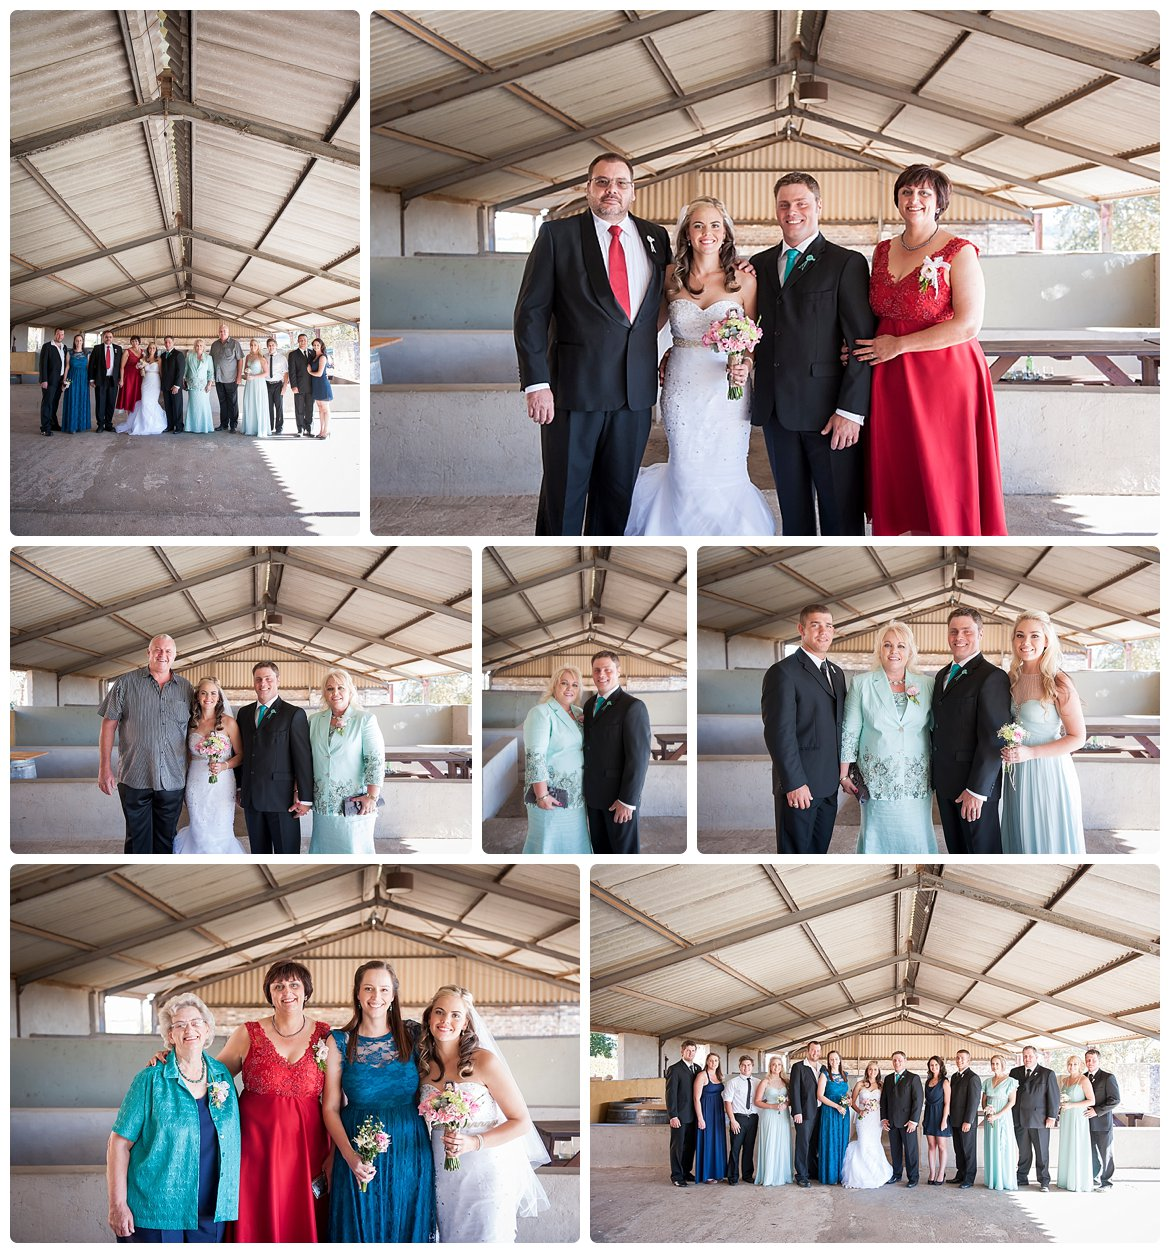 cape-town-wedding-photographer-delvera-joanne-markland-zack-heidi-0021